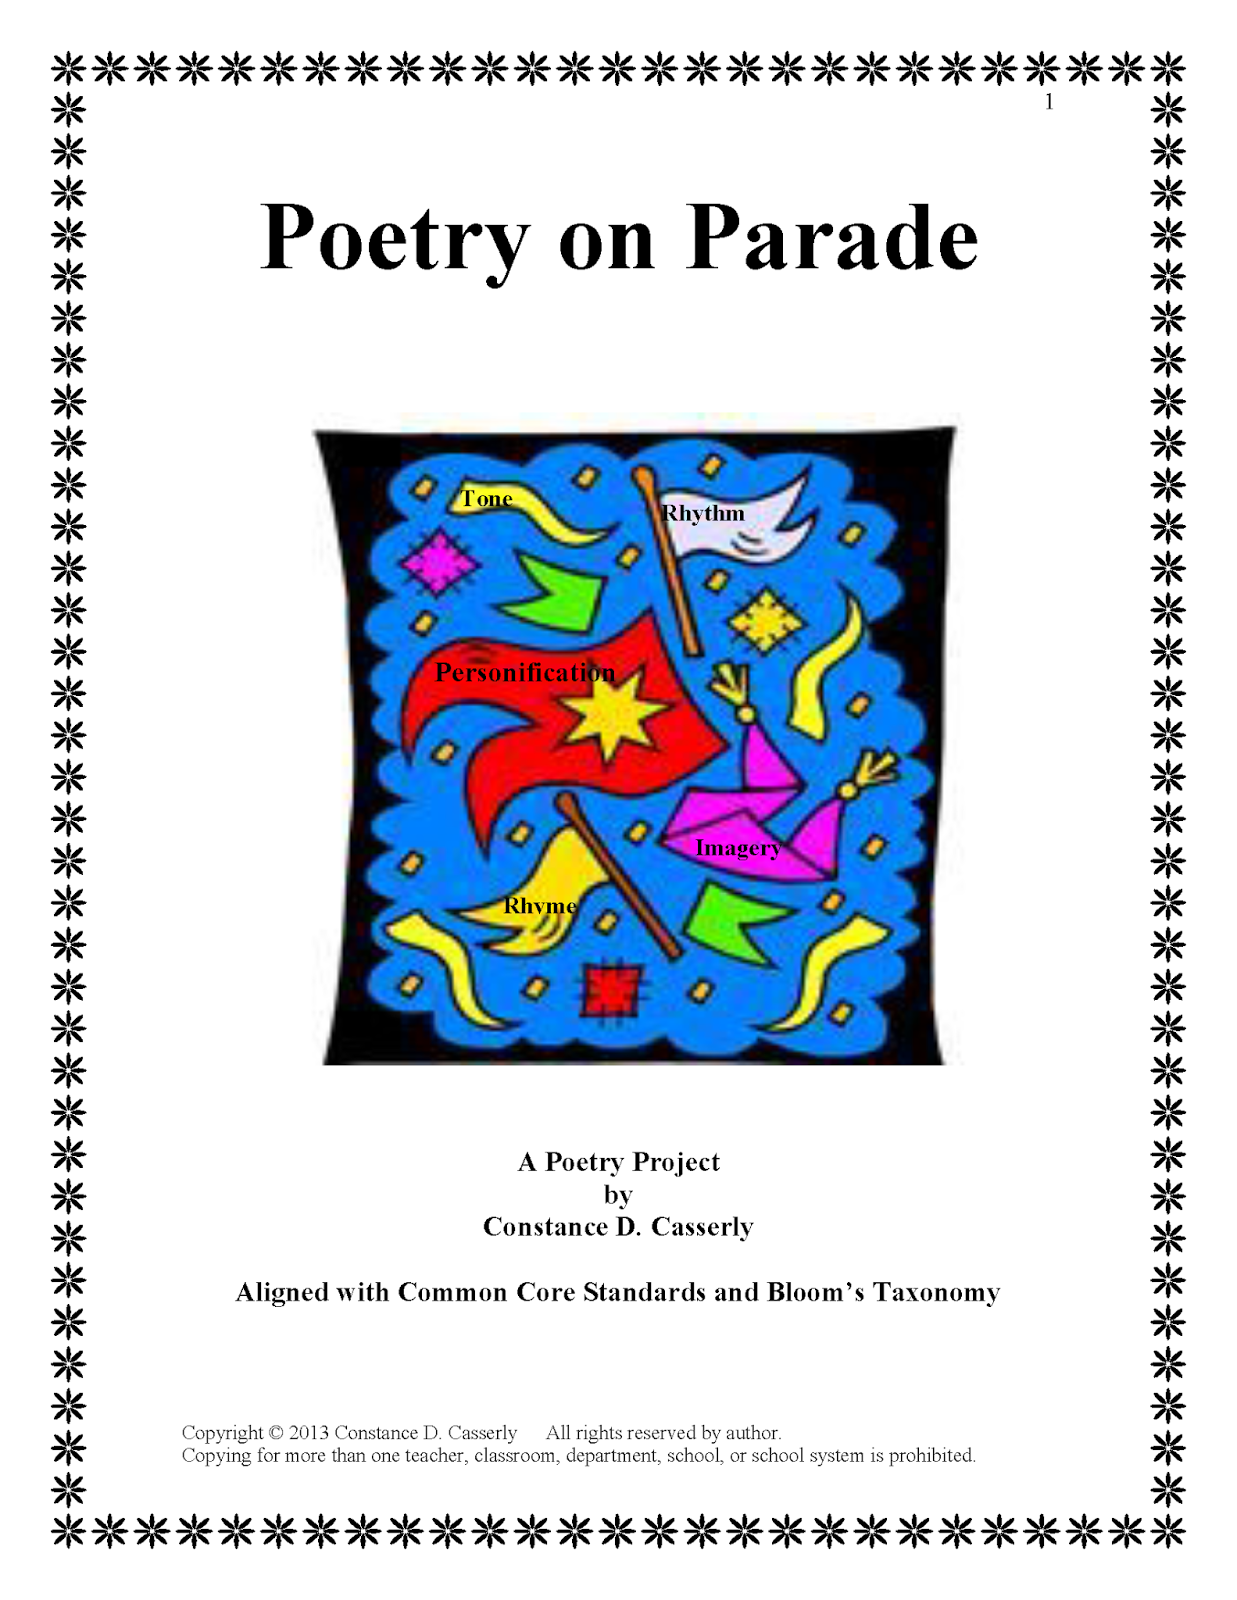 Poetry Analysis Activity: Poetry on Parade